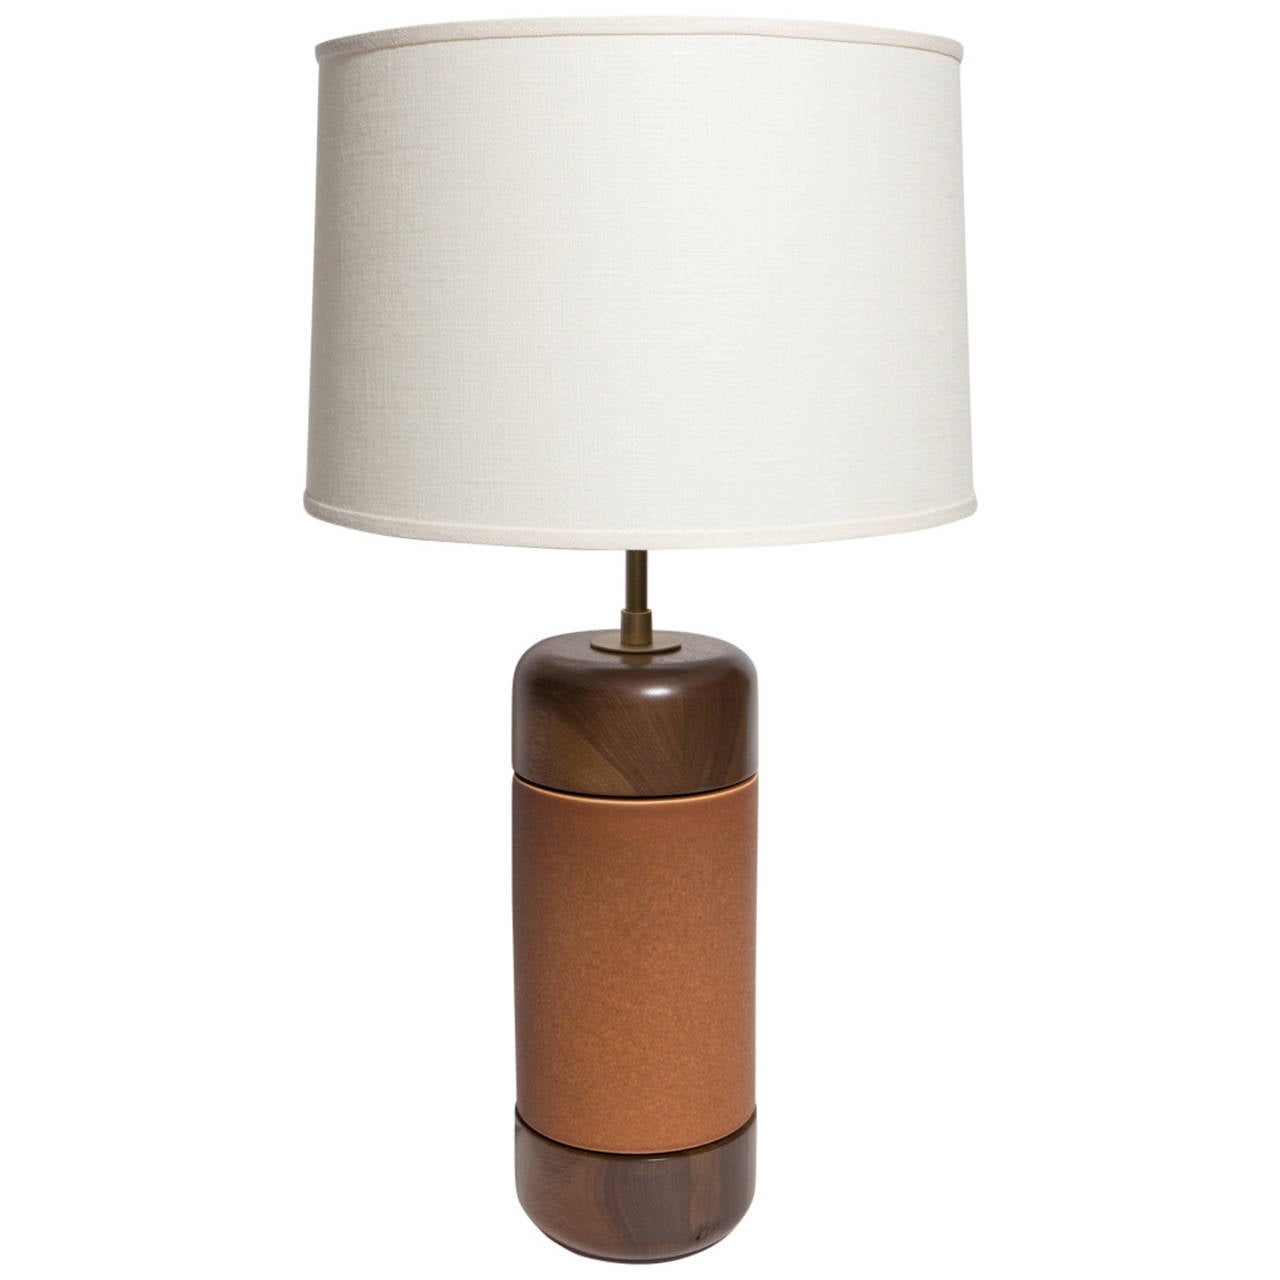 Stone and Sawyer Walnut and Ceramic Table Lamp